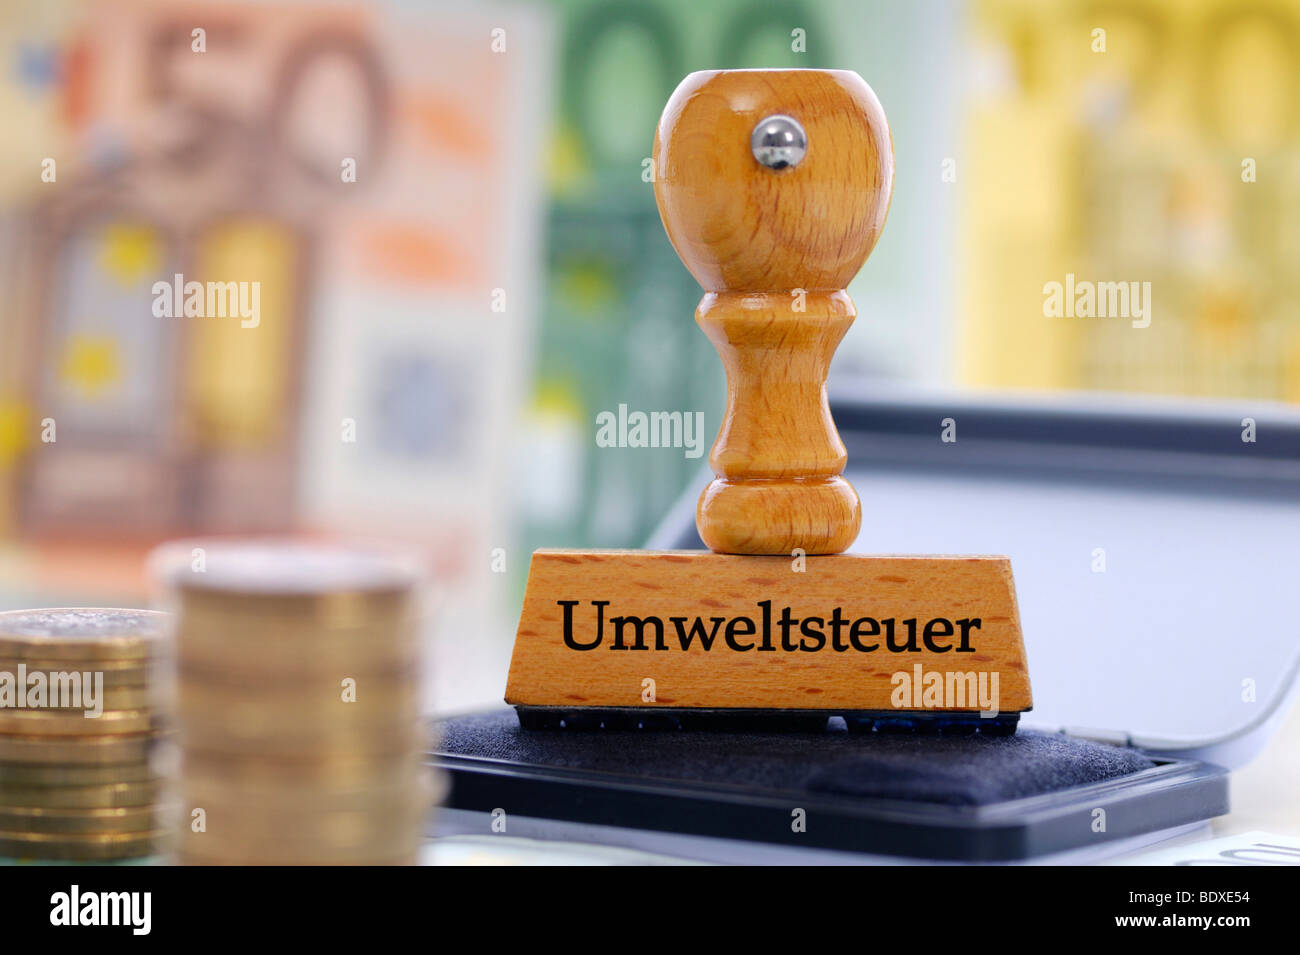 Stamp labelled 'Umweltsteuer', German for 'ecotax' - Stock Image